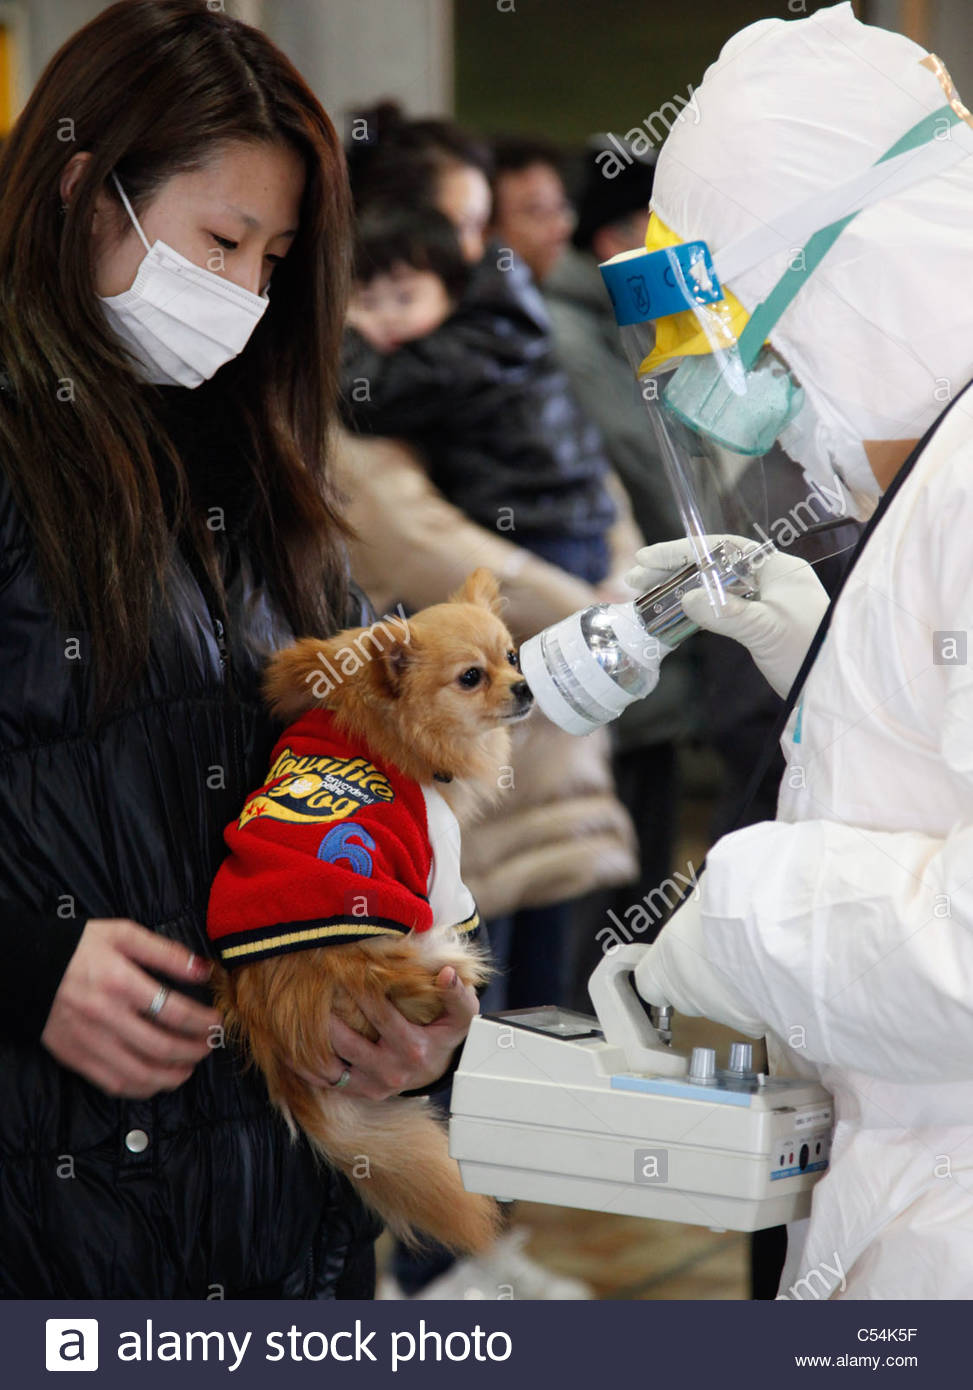 Medical staff in protective gear check radiation levels on local residents in Koriyama, Fukushima prefecture. - Stock Image